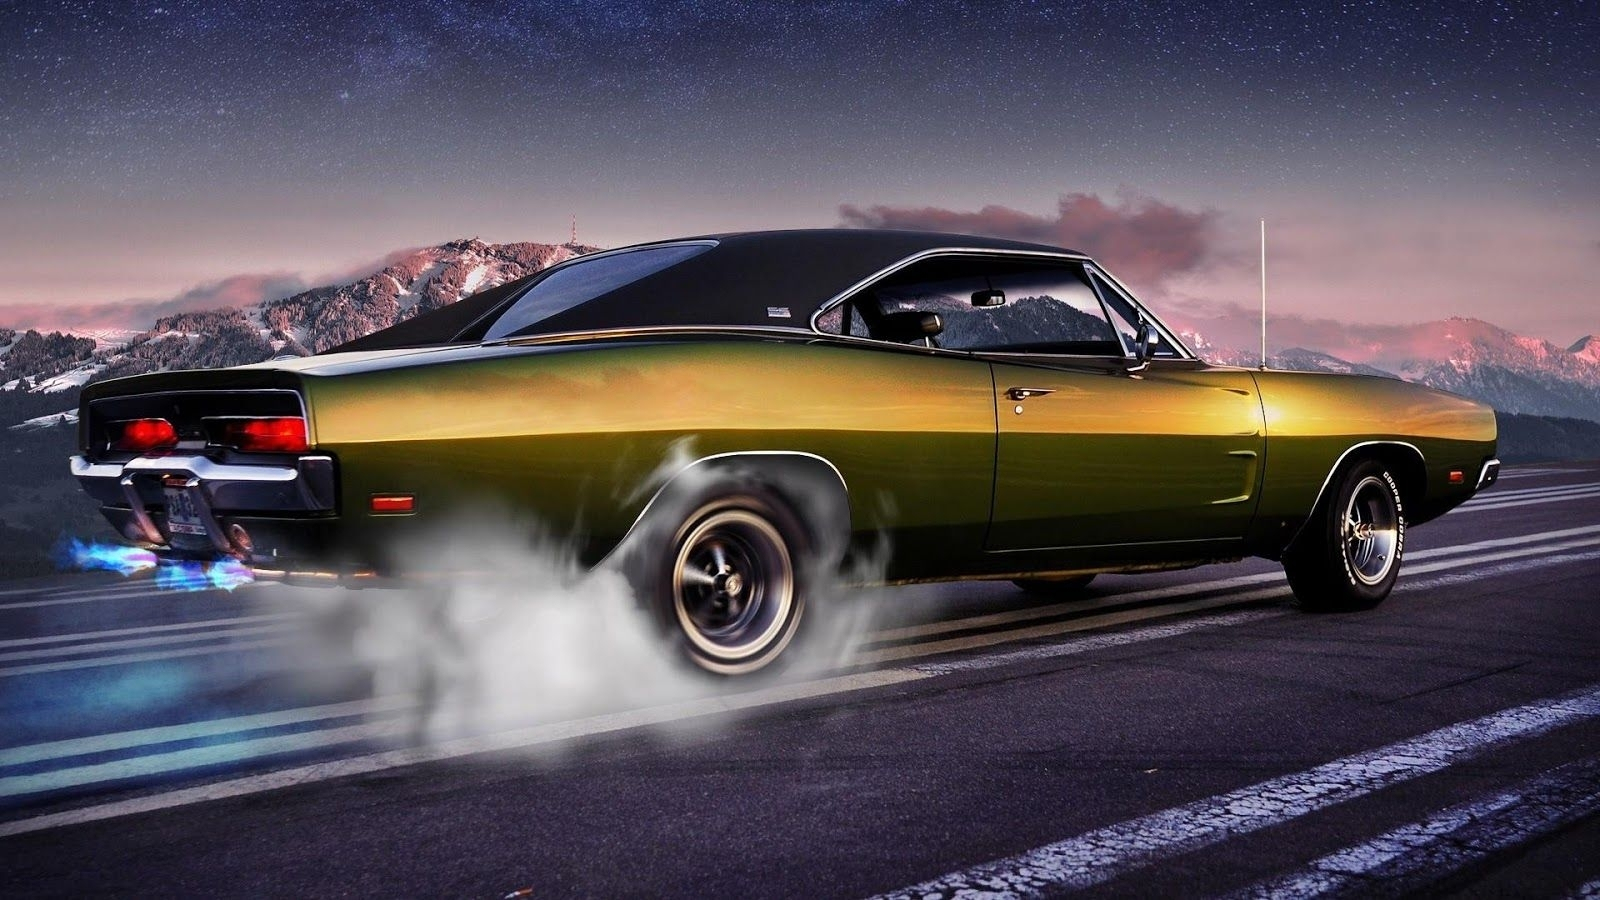 10 Top Old Muscle Car Wallpapers FULL HD 1920×1080 For PC Background